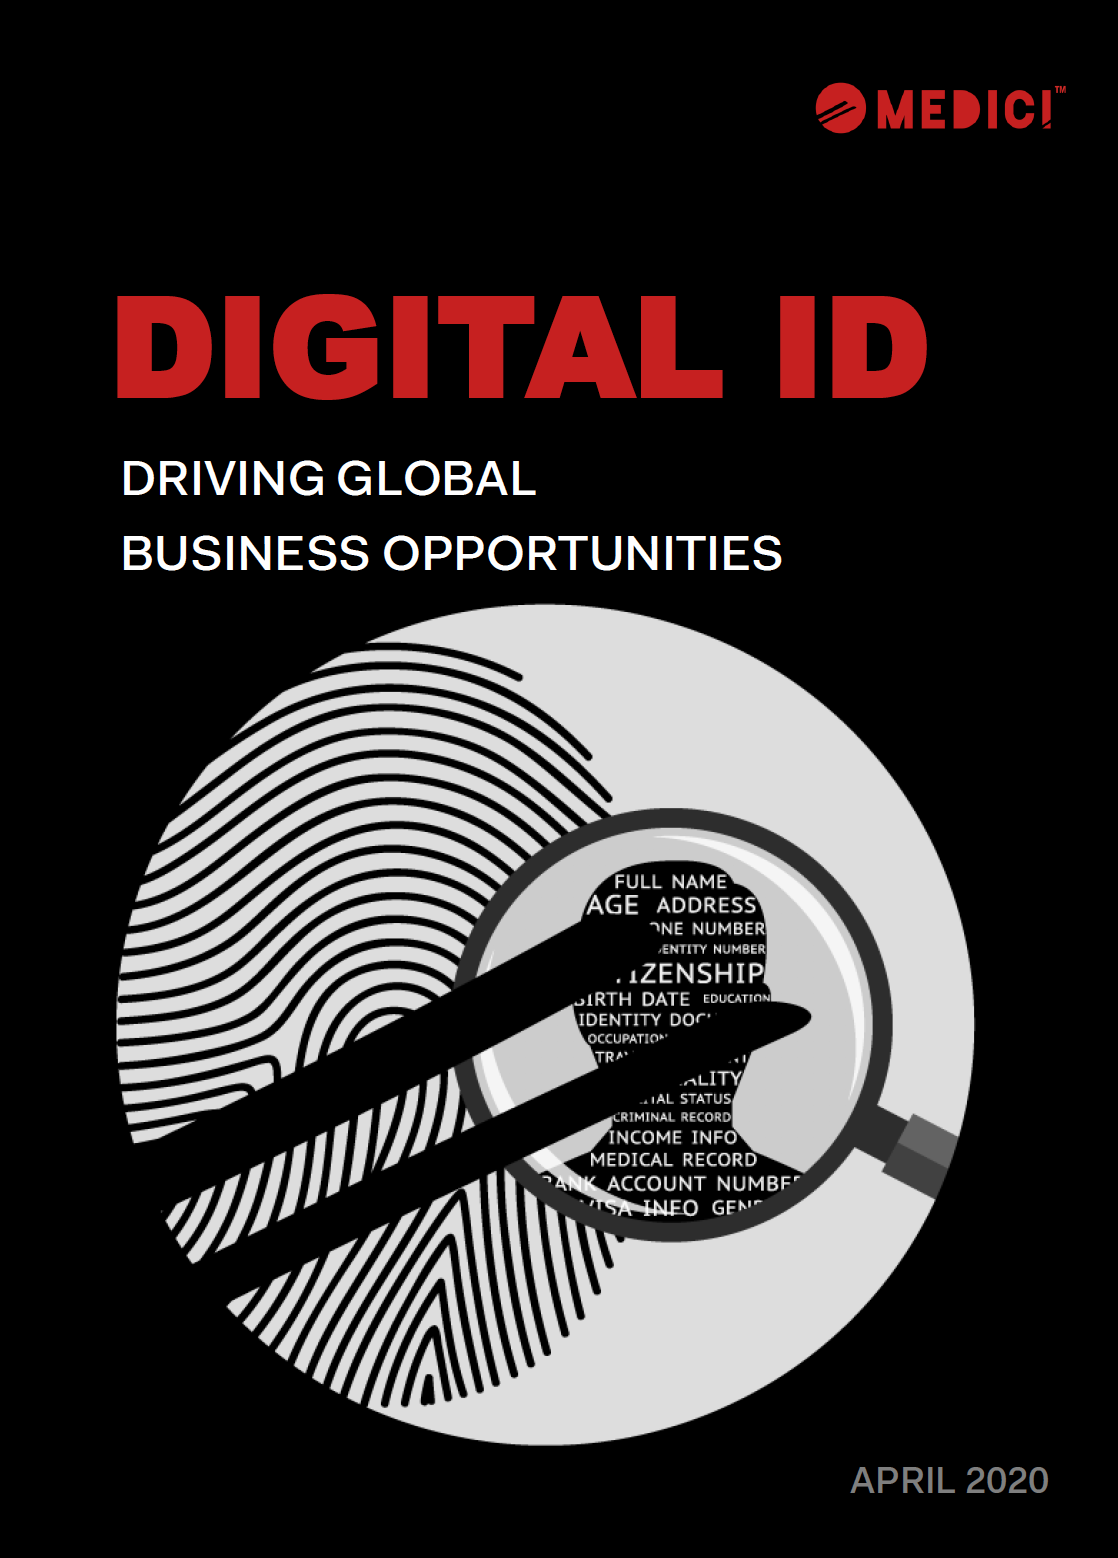 Digital ID Whitepaper: Driving Global Business Opportunities